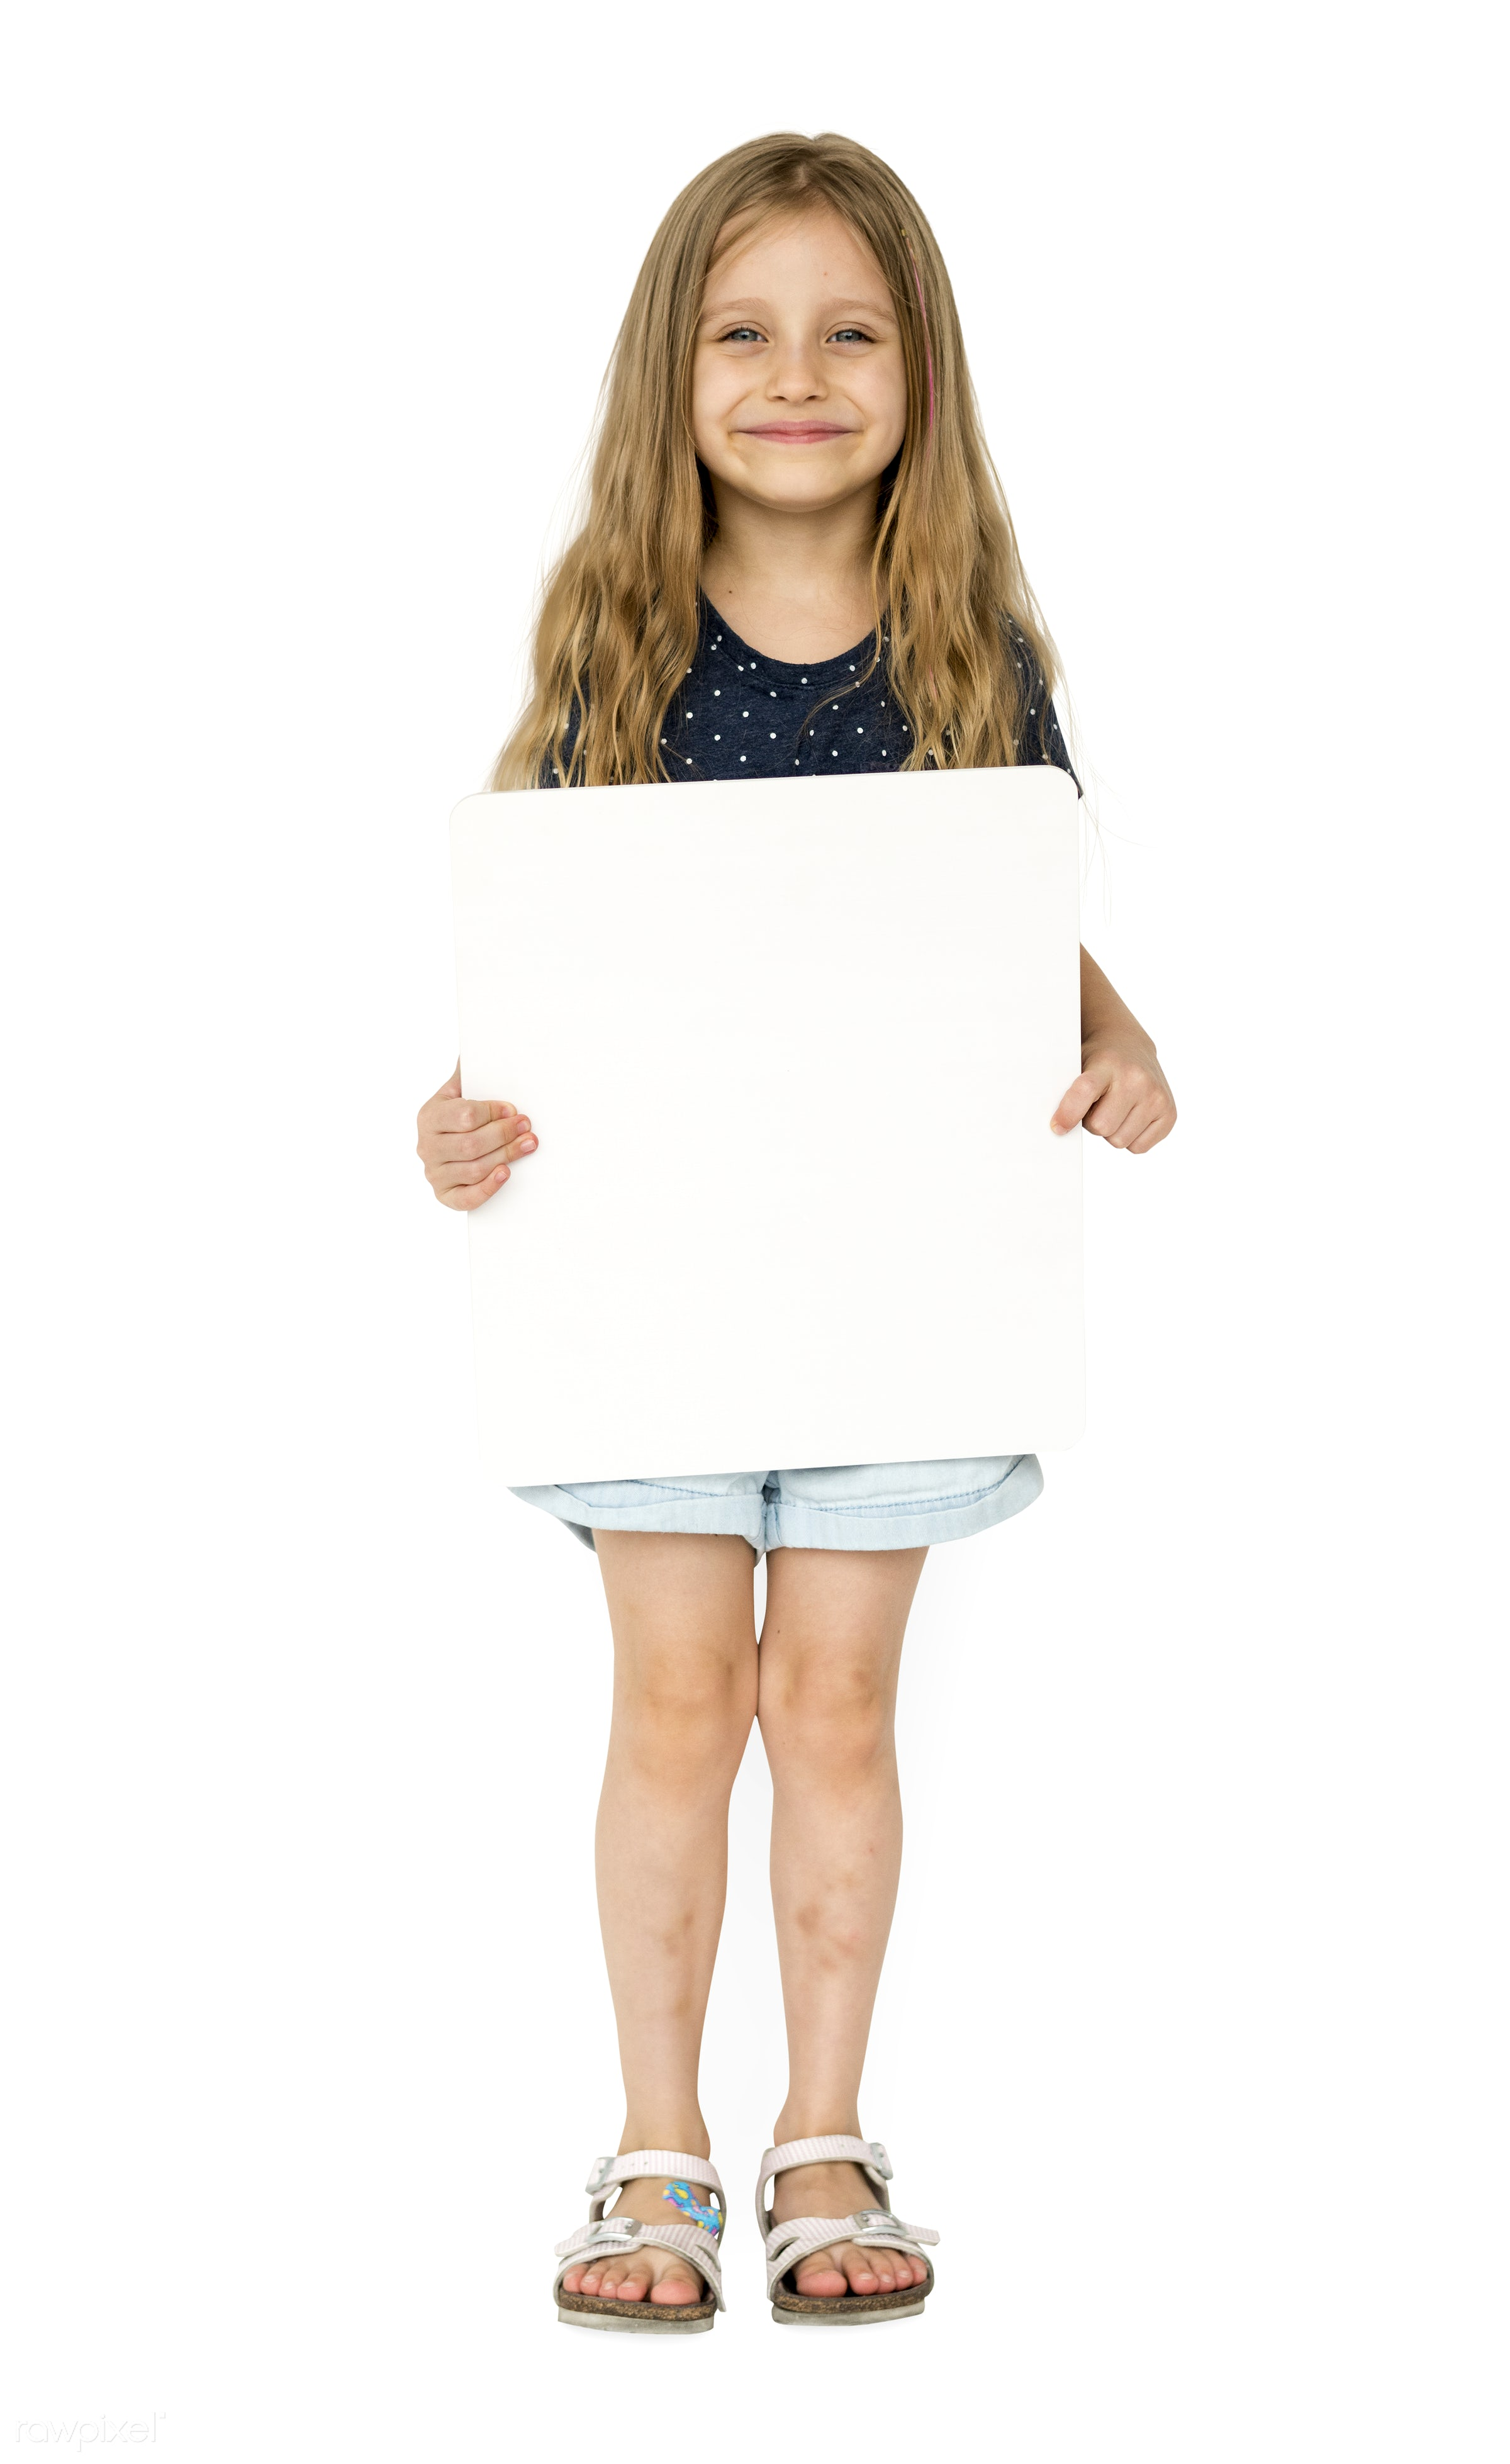 girl, mockup, adorable, background, banner, blank, casual, charming, cheerful, child, childhood, copy space, cute, holding,...